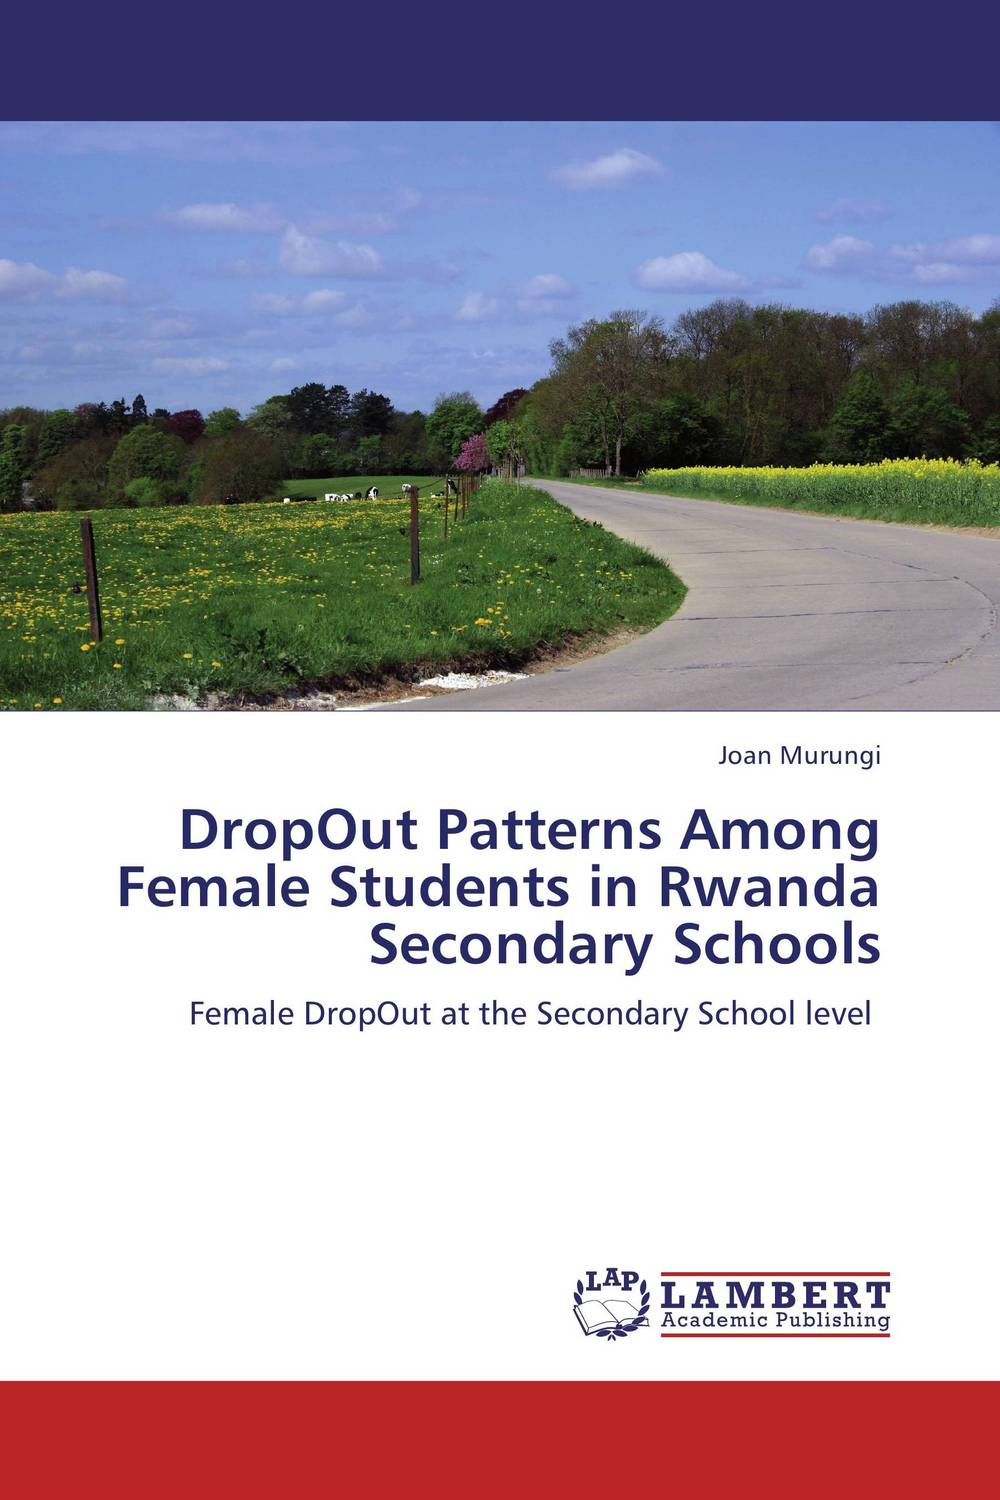 DropOut Patterns Among Female Students in Rwanda Secondary Schools role of school leadership in promoting moral integrity among students